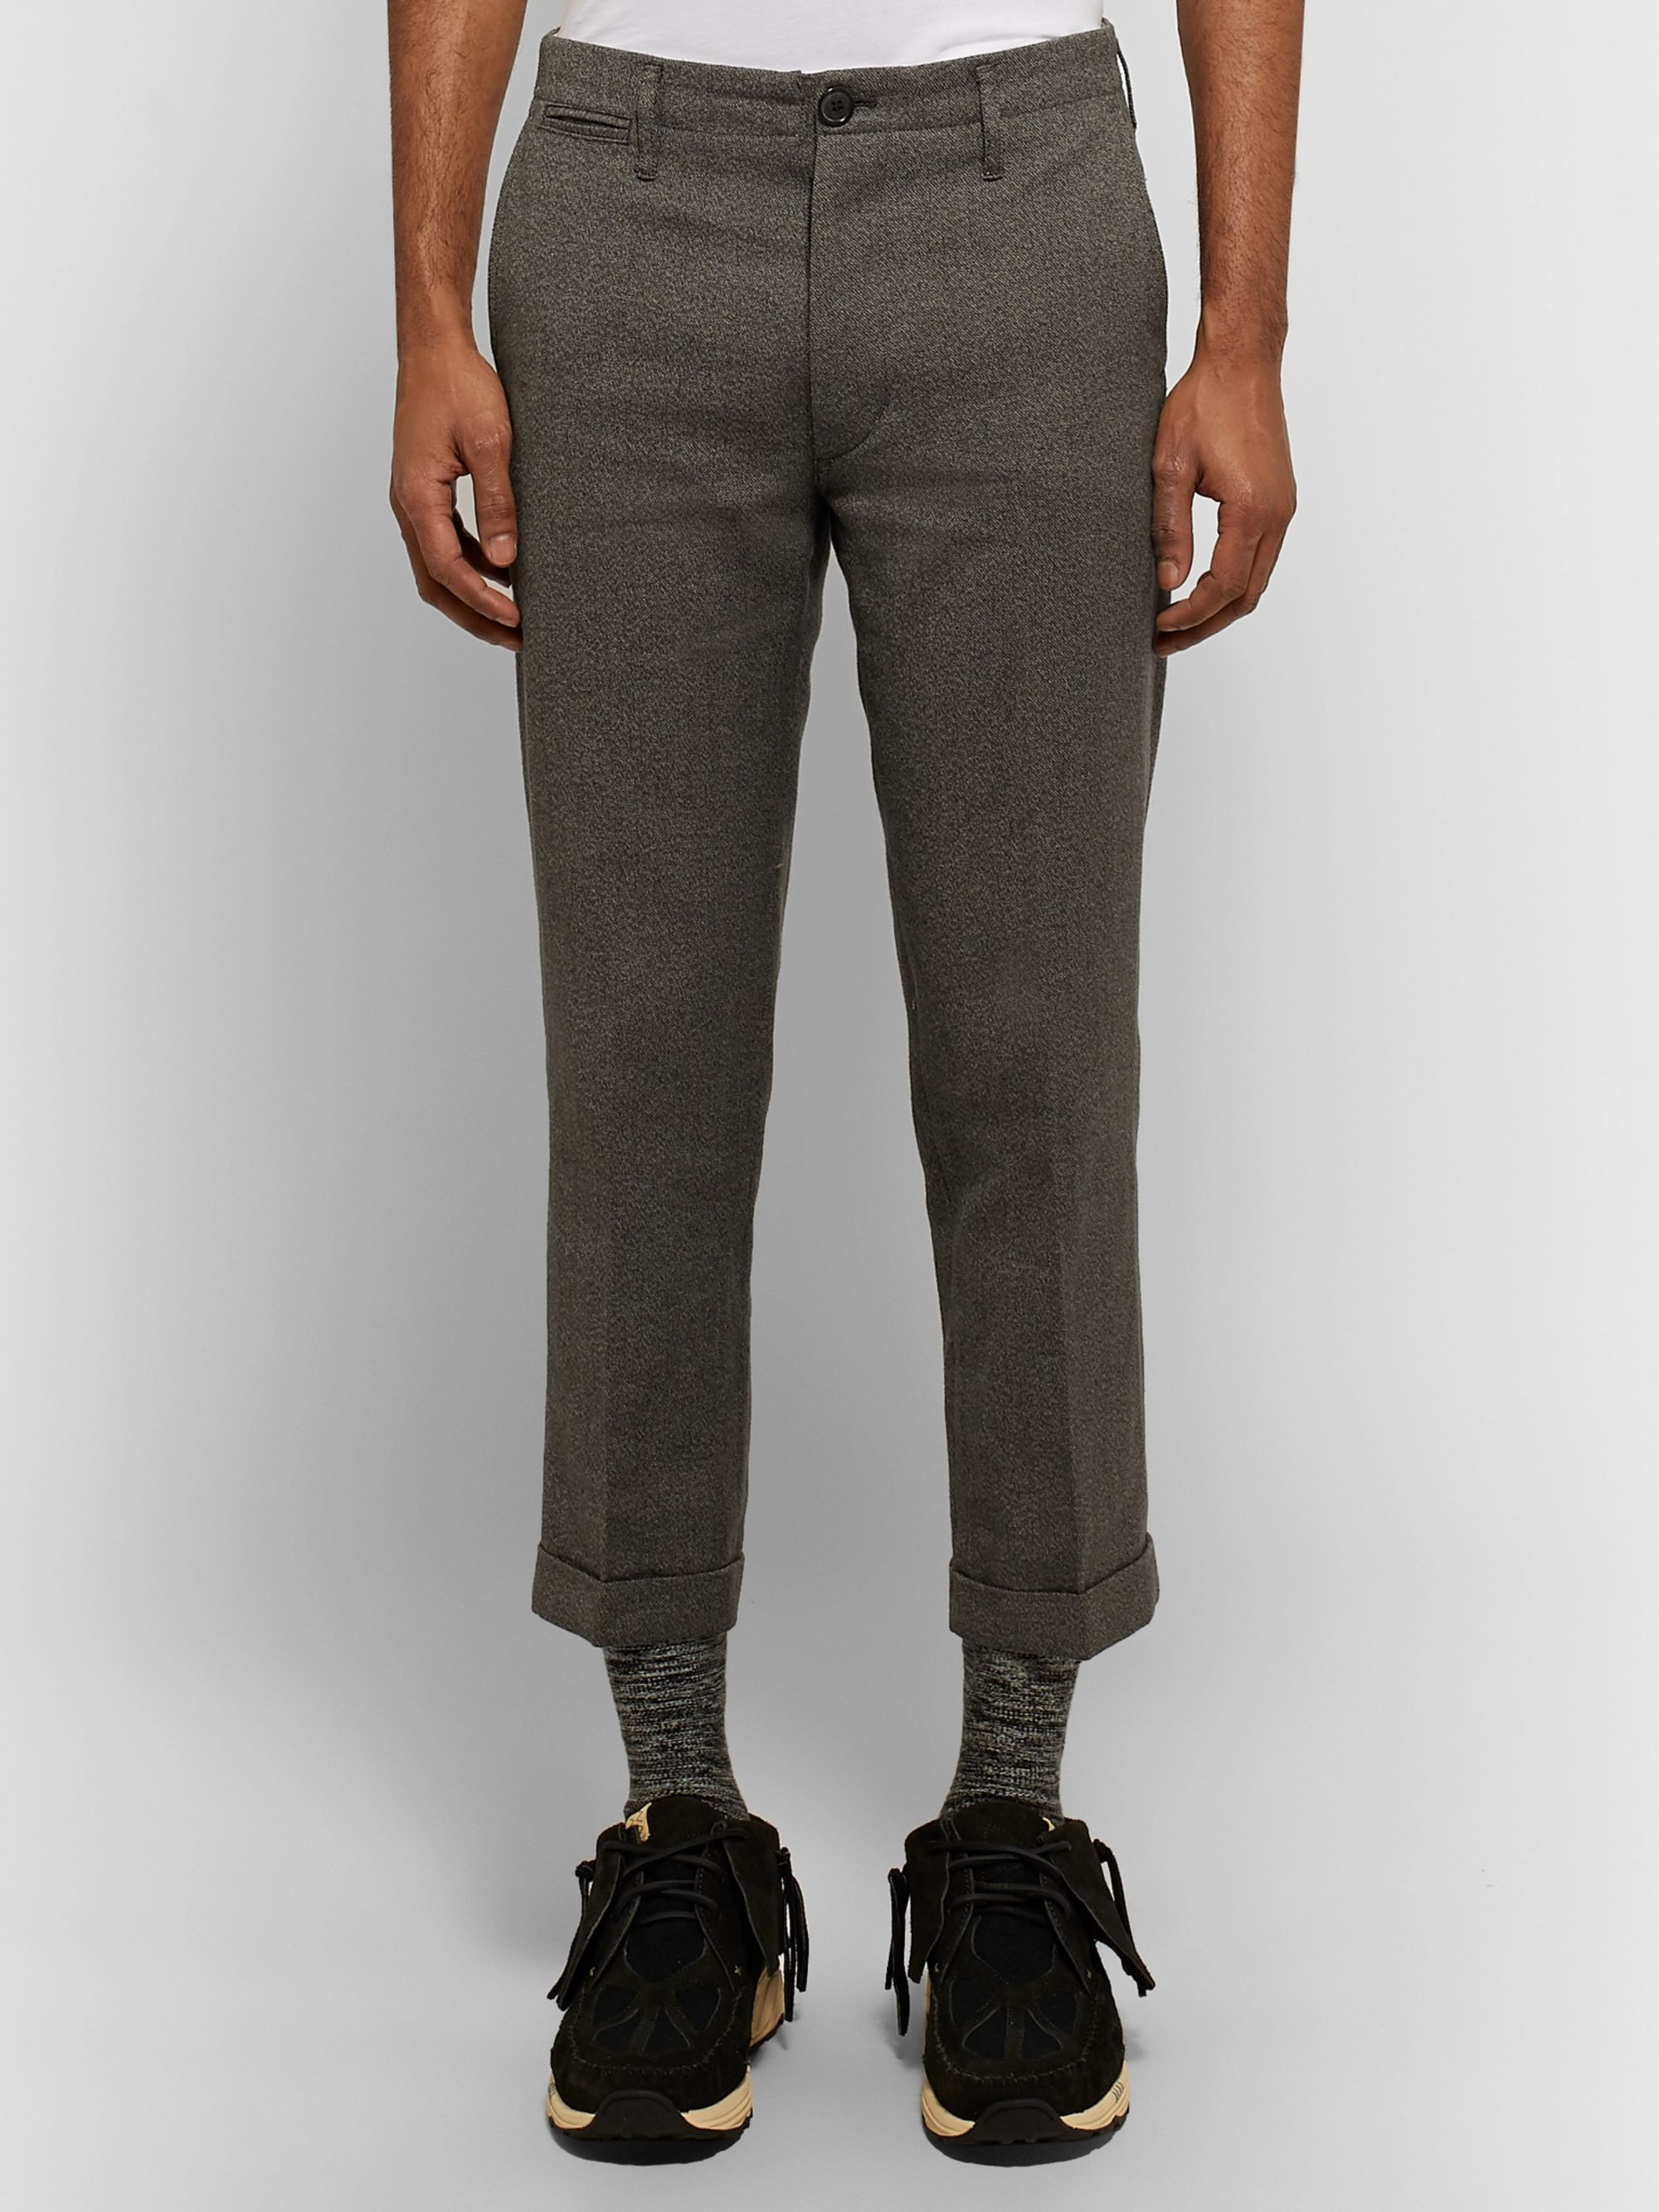 visvim High-Water Slim-Fit Tapered Linen-Blend Trousers